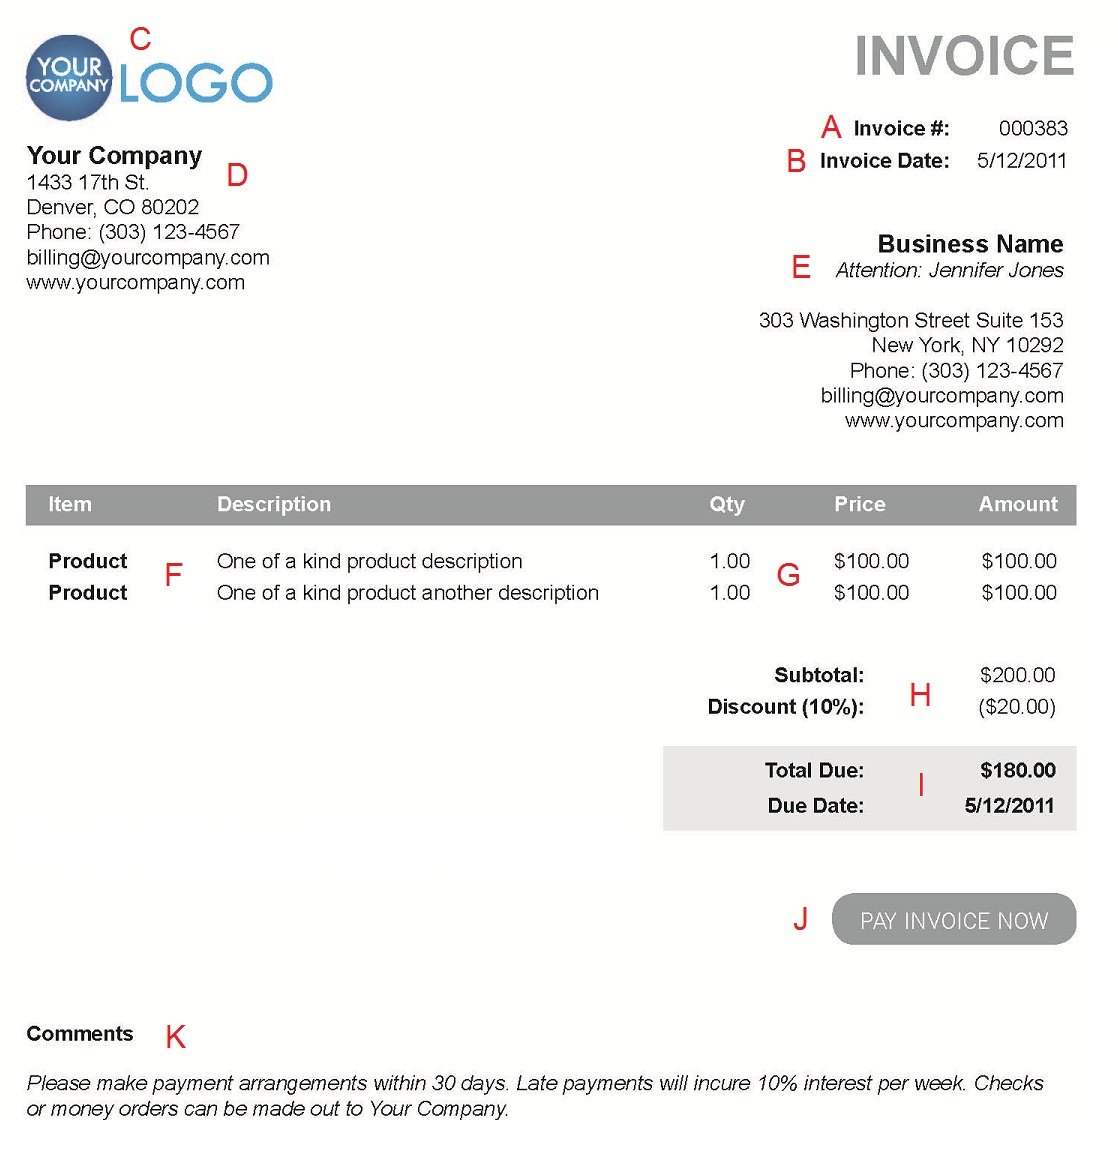 Proatmealus  Stunning The  Different Sections Of An Electronic Payment Invoice With Foxy A  With Cute Create A Invoice Also Templates For Invoices In Addition Office Invoice Template And Lexis Power Invoice As Well As Invoice Tracking Additionally How To Create An Invoice In Word From Paysimplecom With Proatmealus  Foxy The  Different Sections Of An Electronic Payment Invoice With Cute A  And Stunning Create A Invoice Also Templates For Invoices In Addition Office Invoice Template From Paysimplecom